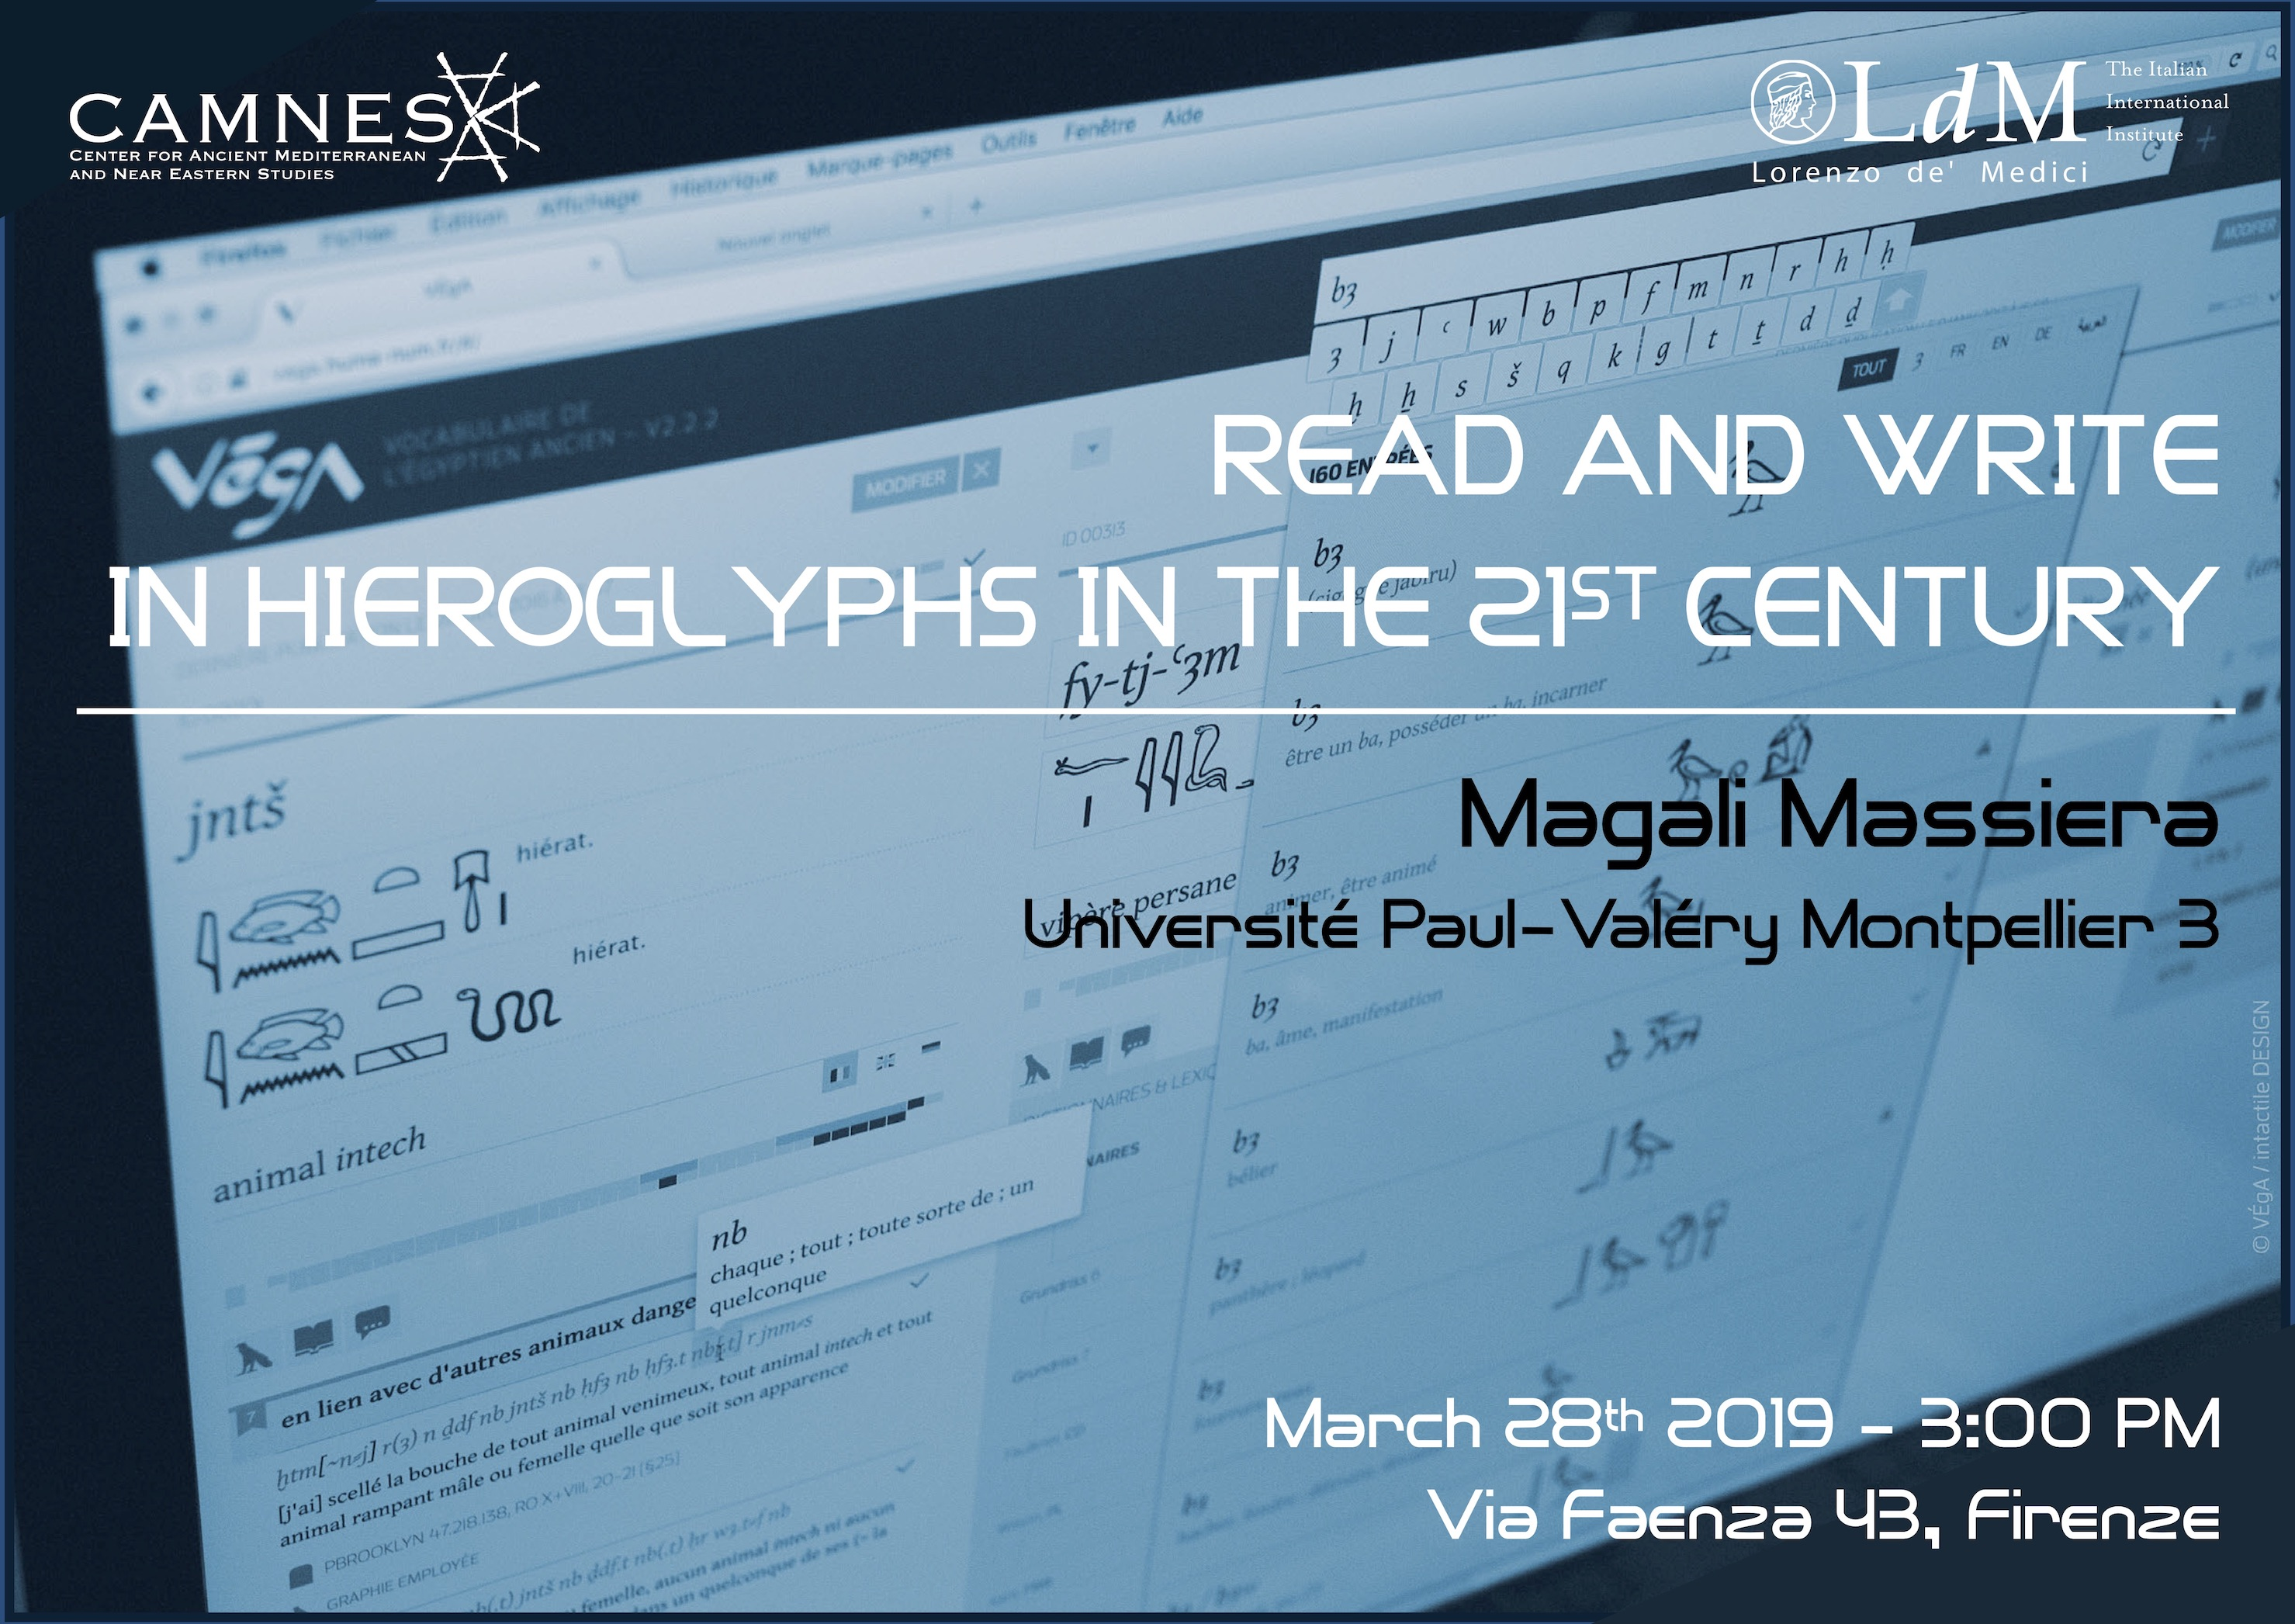 LECTURE: Read & write in Hieroglyphs the 21ST Century